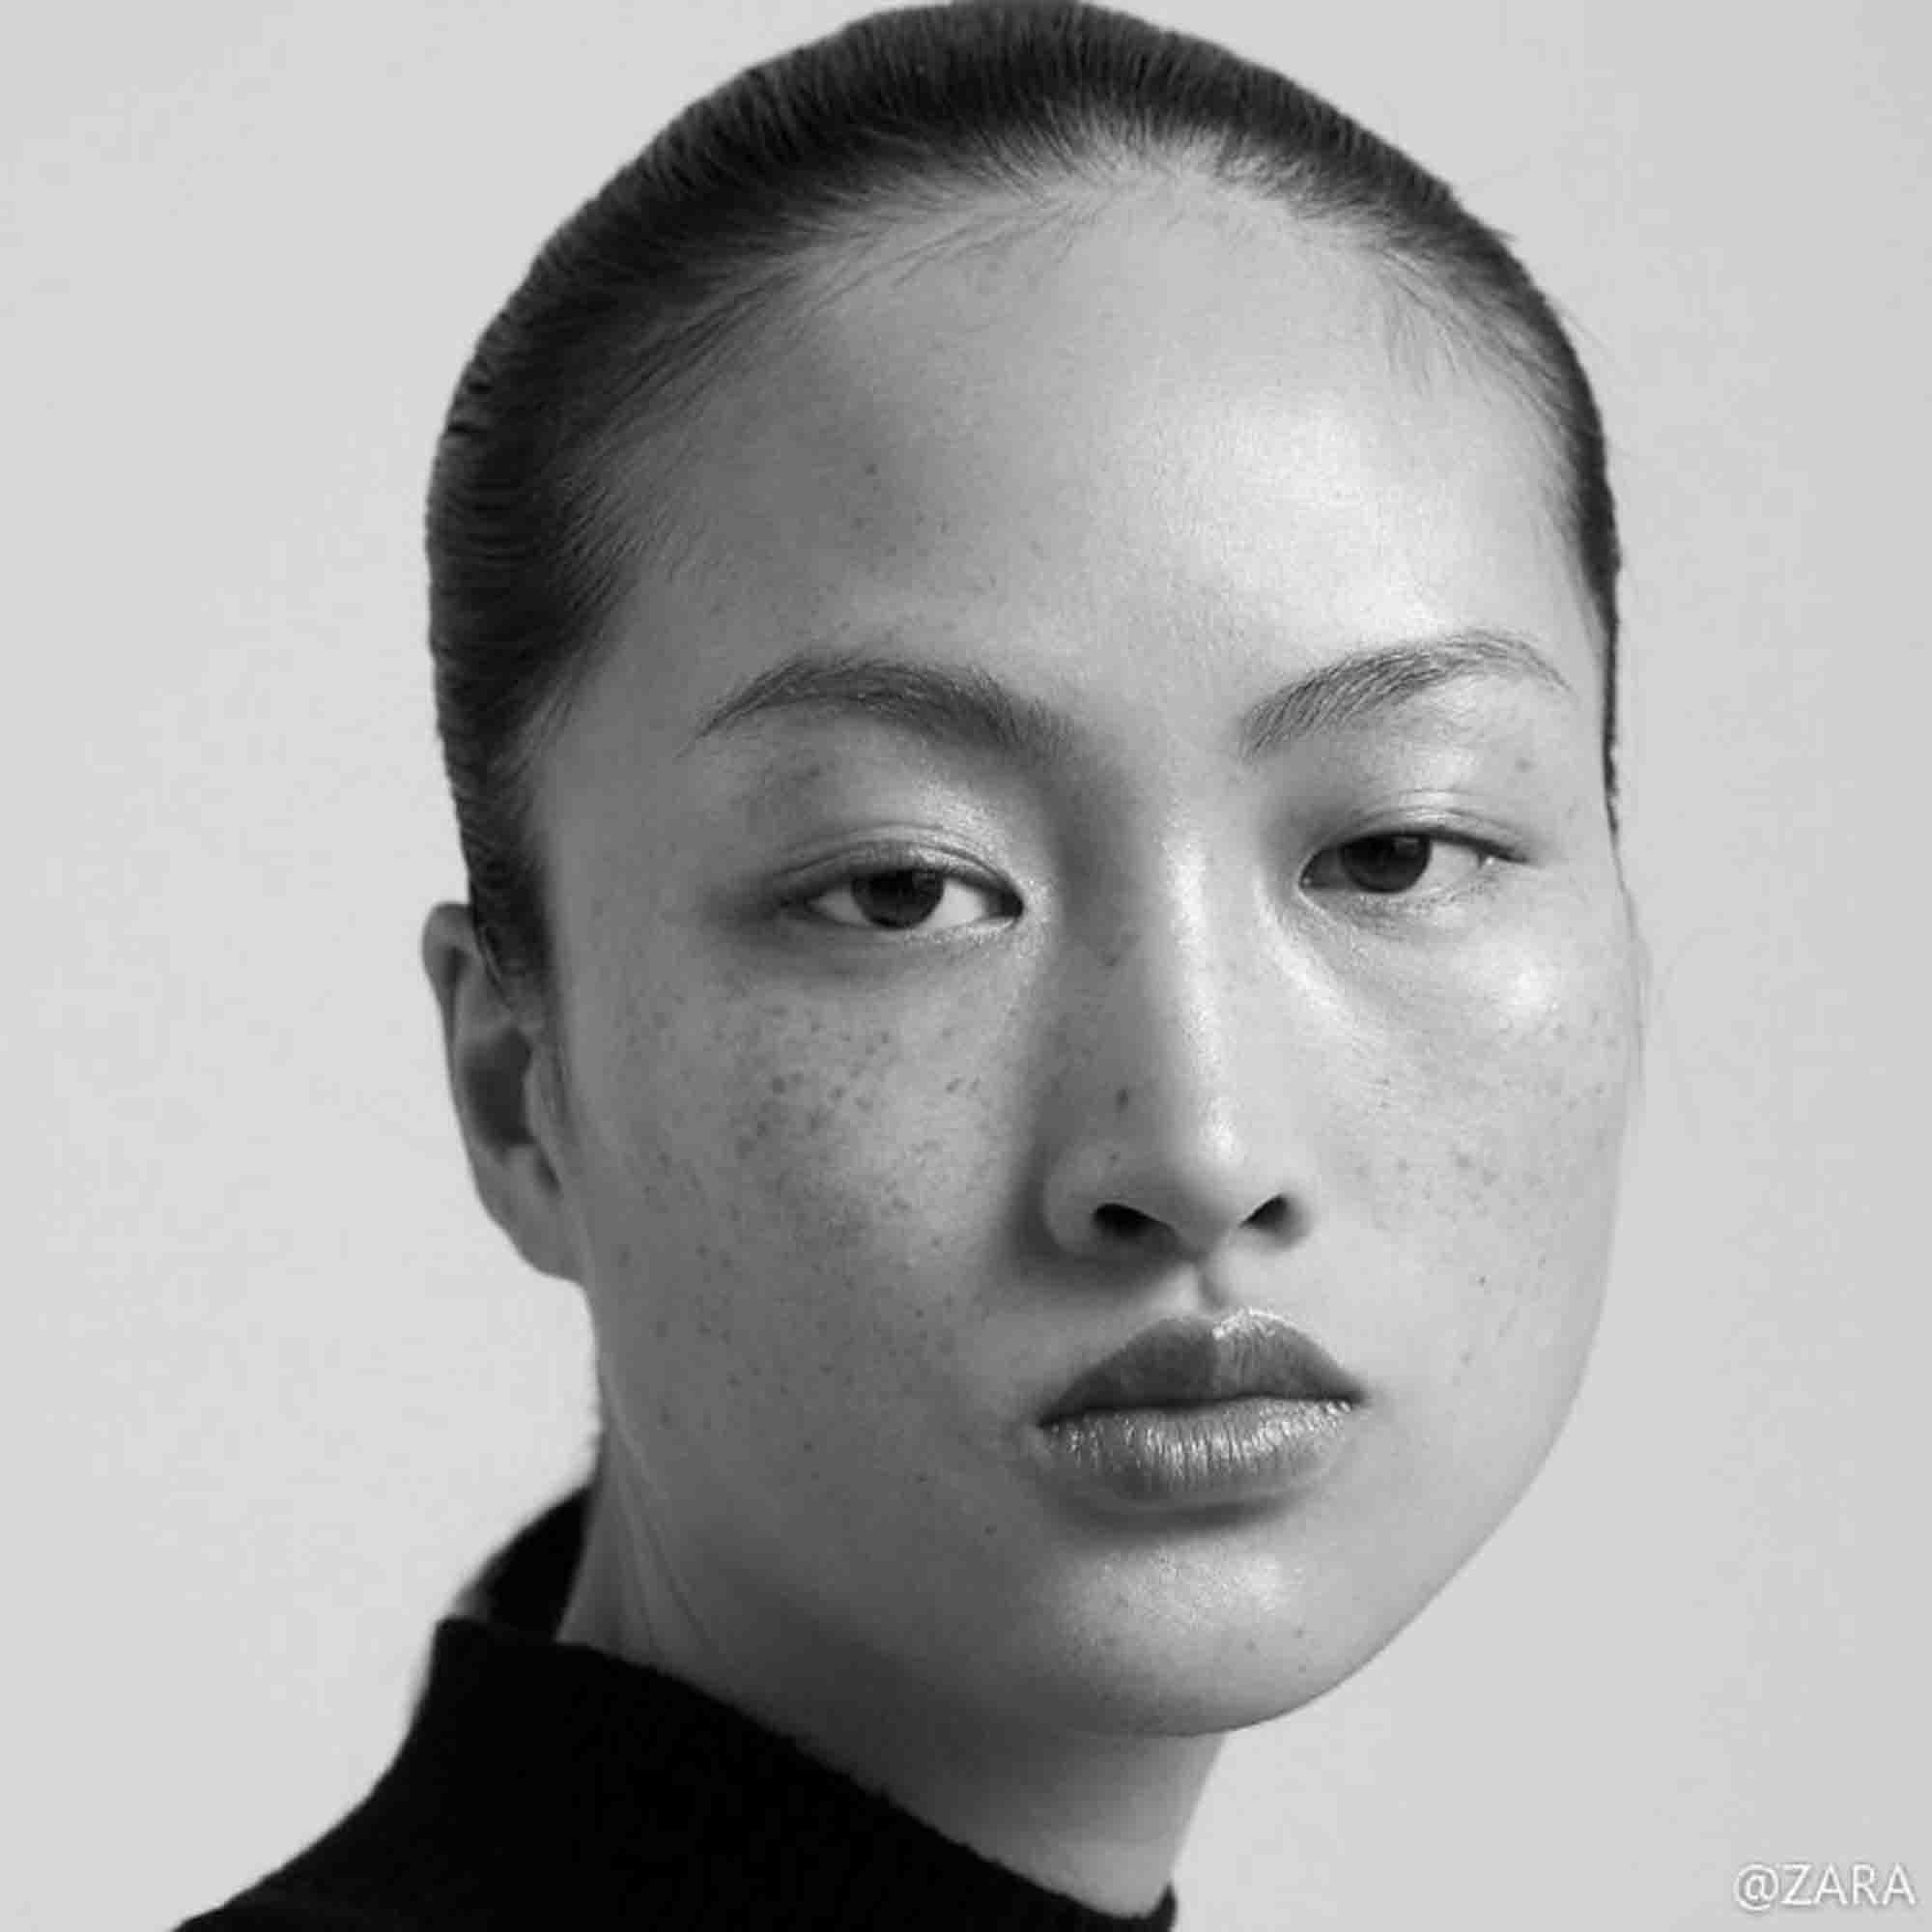 Outrage Over Zara Using Freckle-Faced Model In China